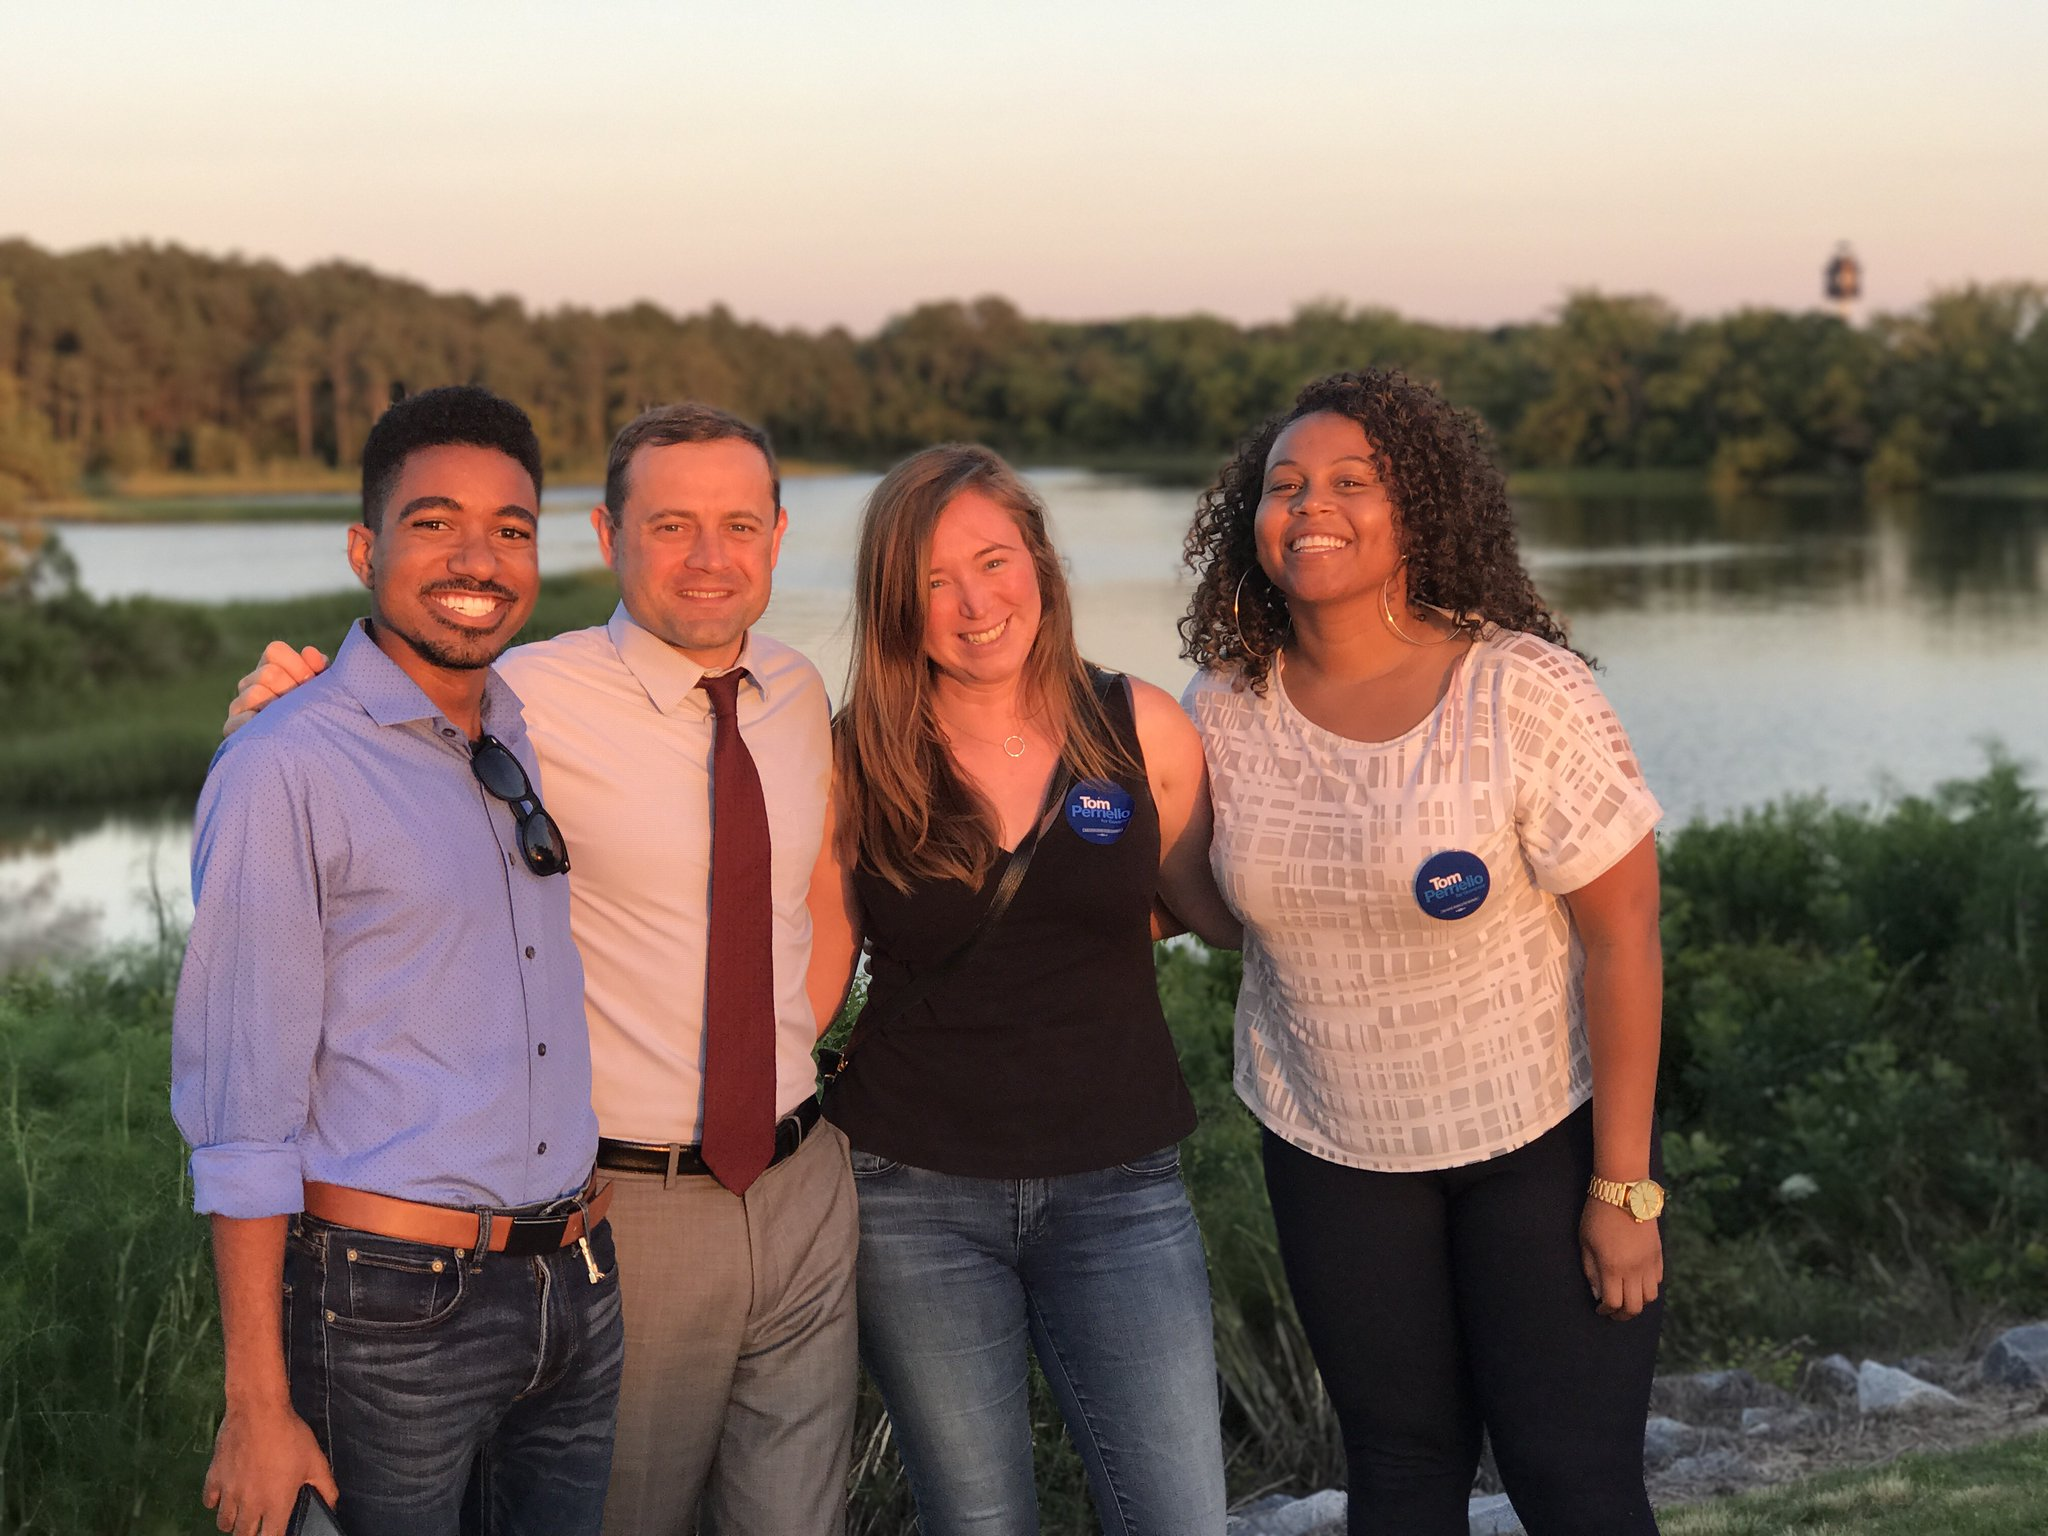 Best #24hoursofTom team in the game right here. Nothing like a beautiful sunset on the Eastern Shore! https://t.co/lwWltF6qcY